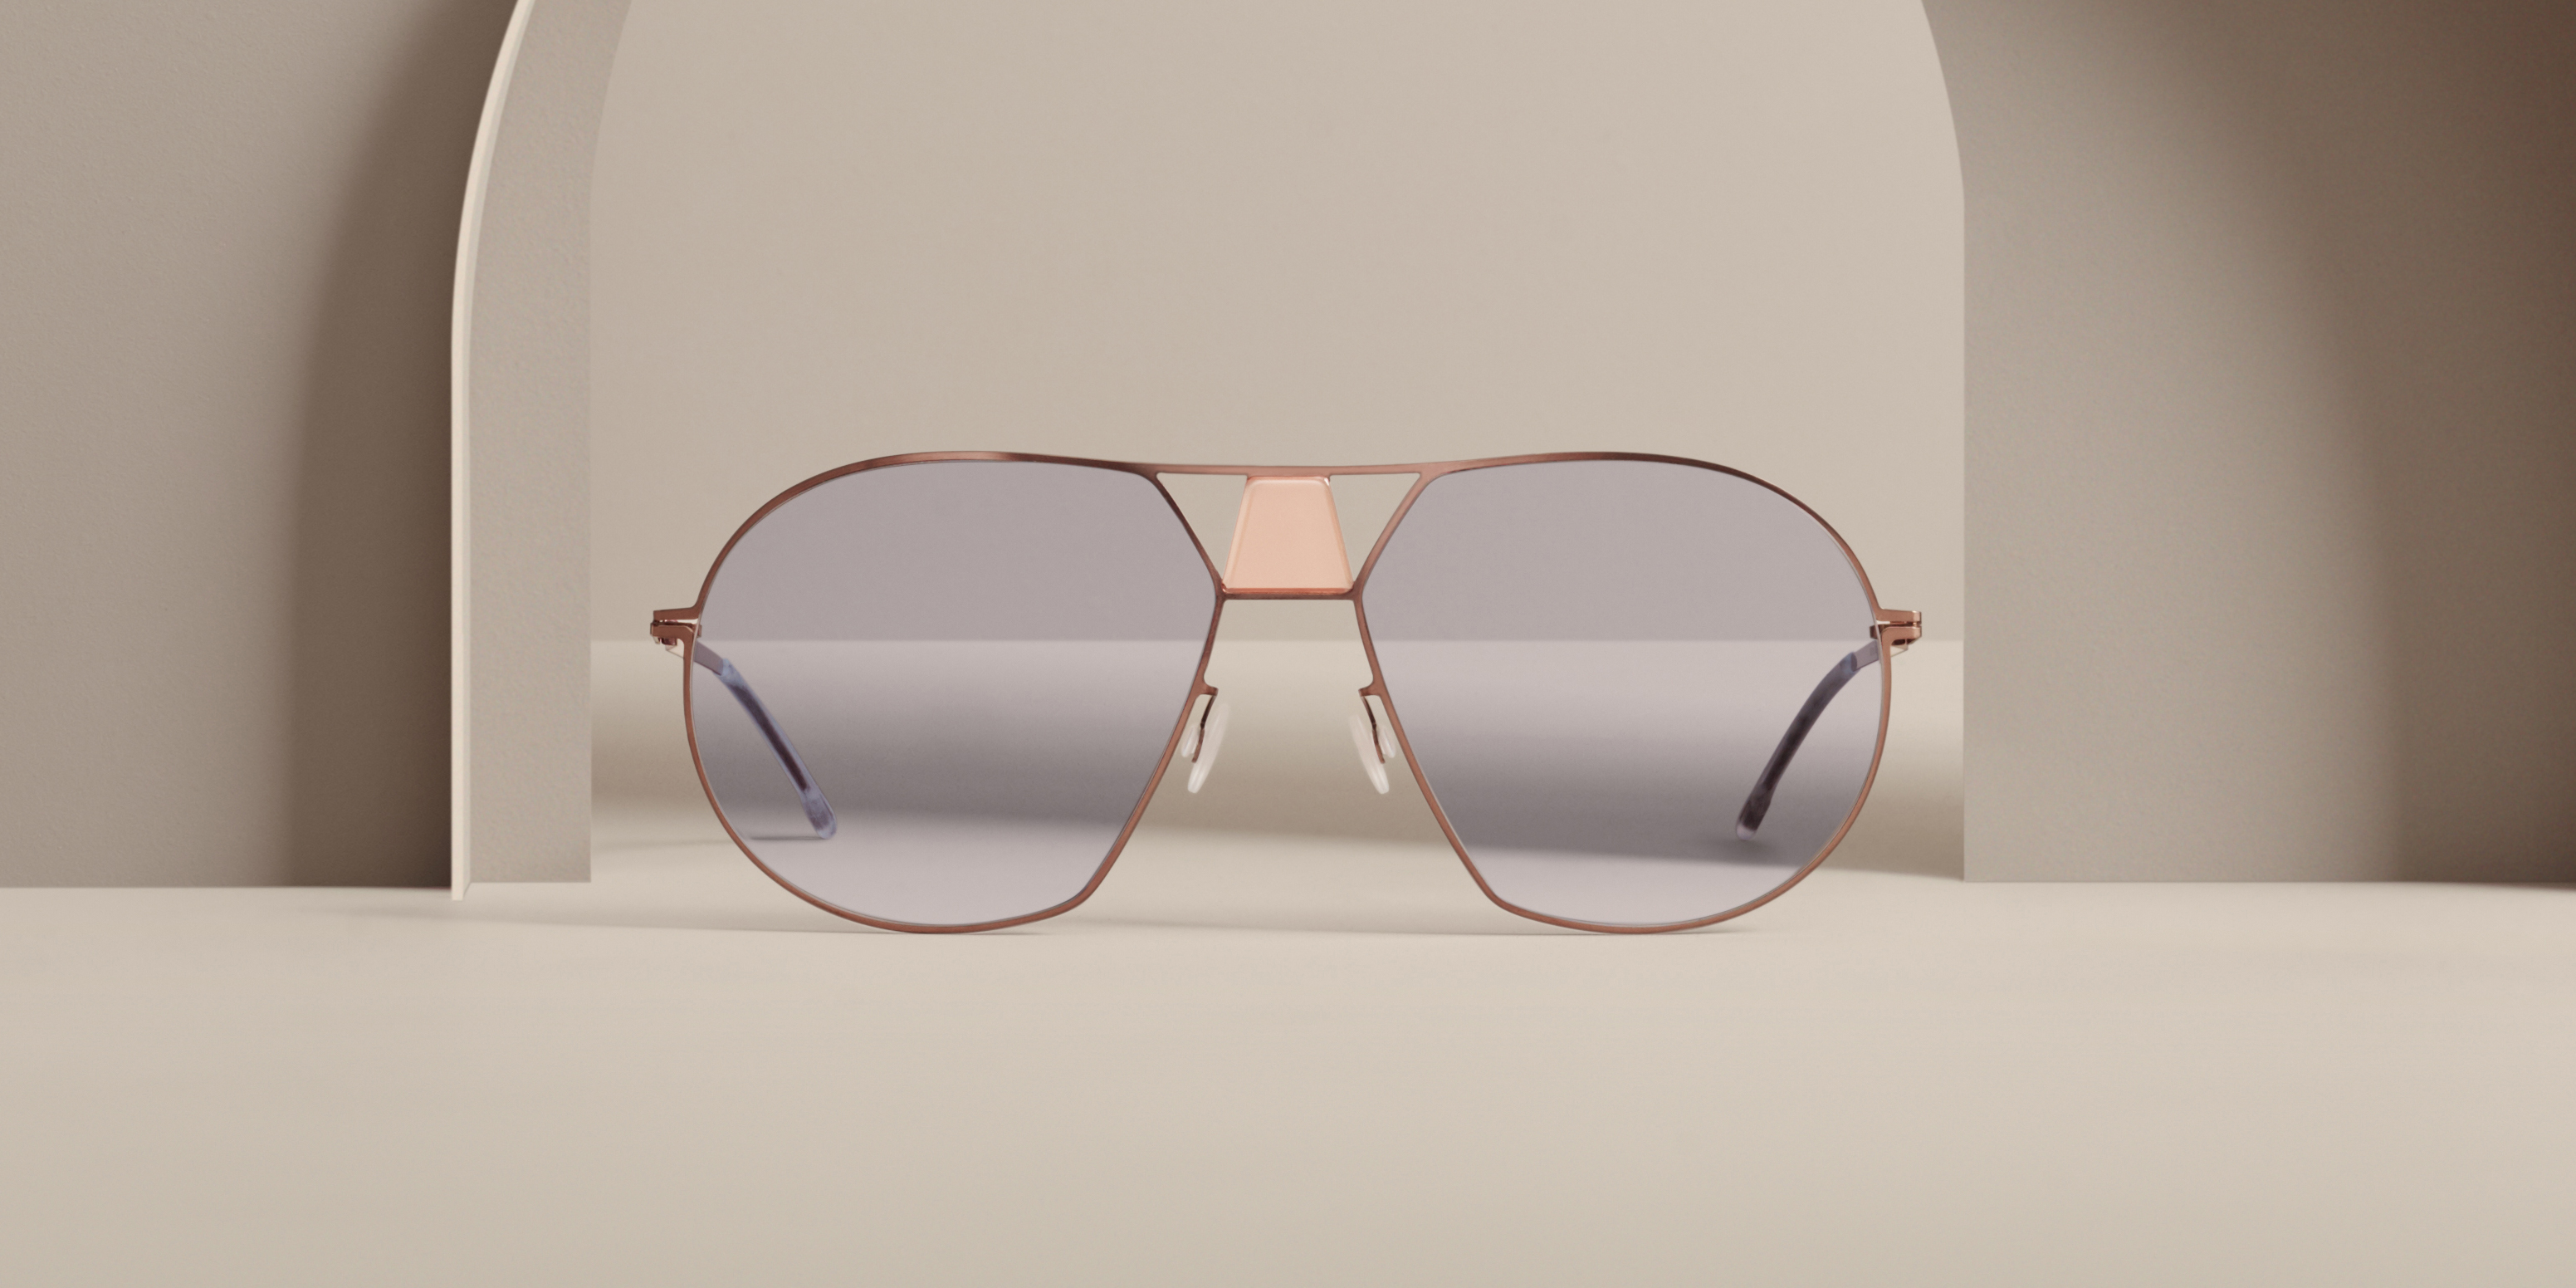 MYKITA Campaign Studio Shiny Copper Misty Peach Rgb